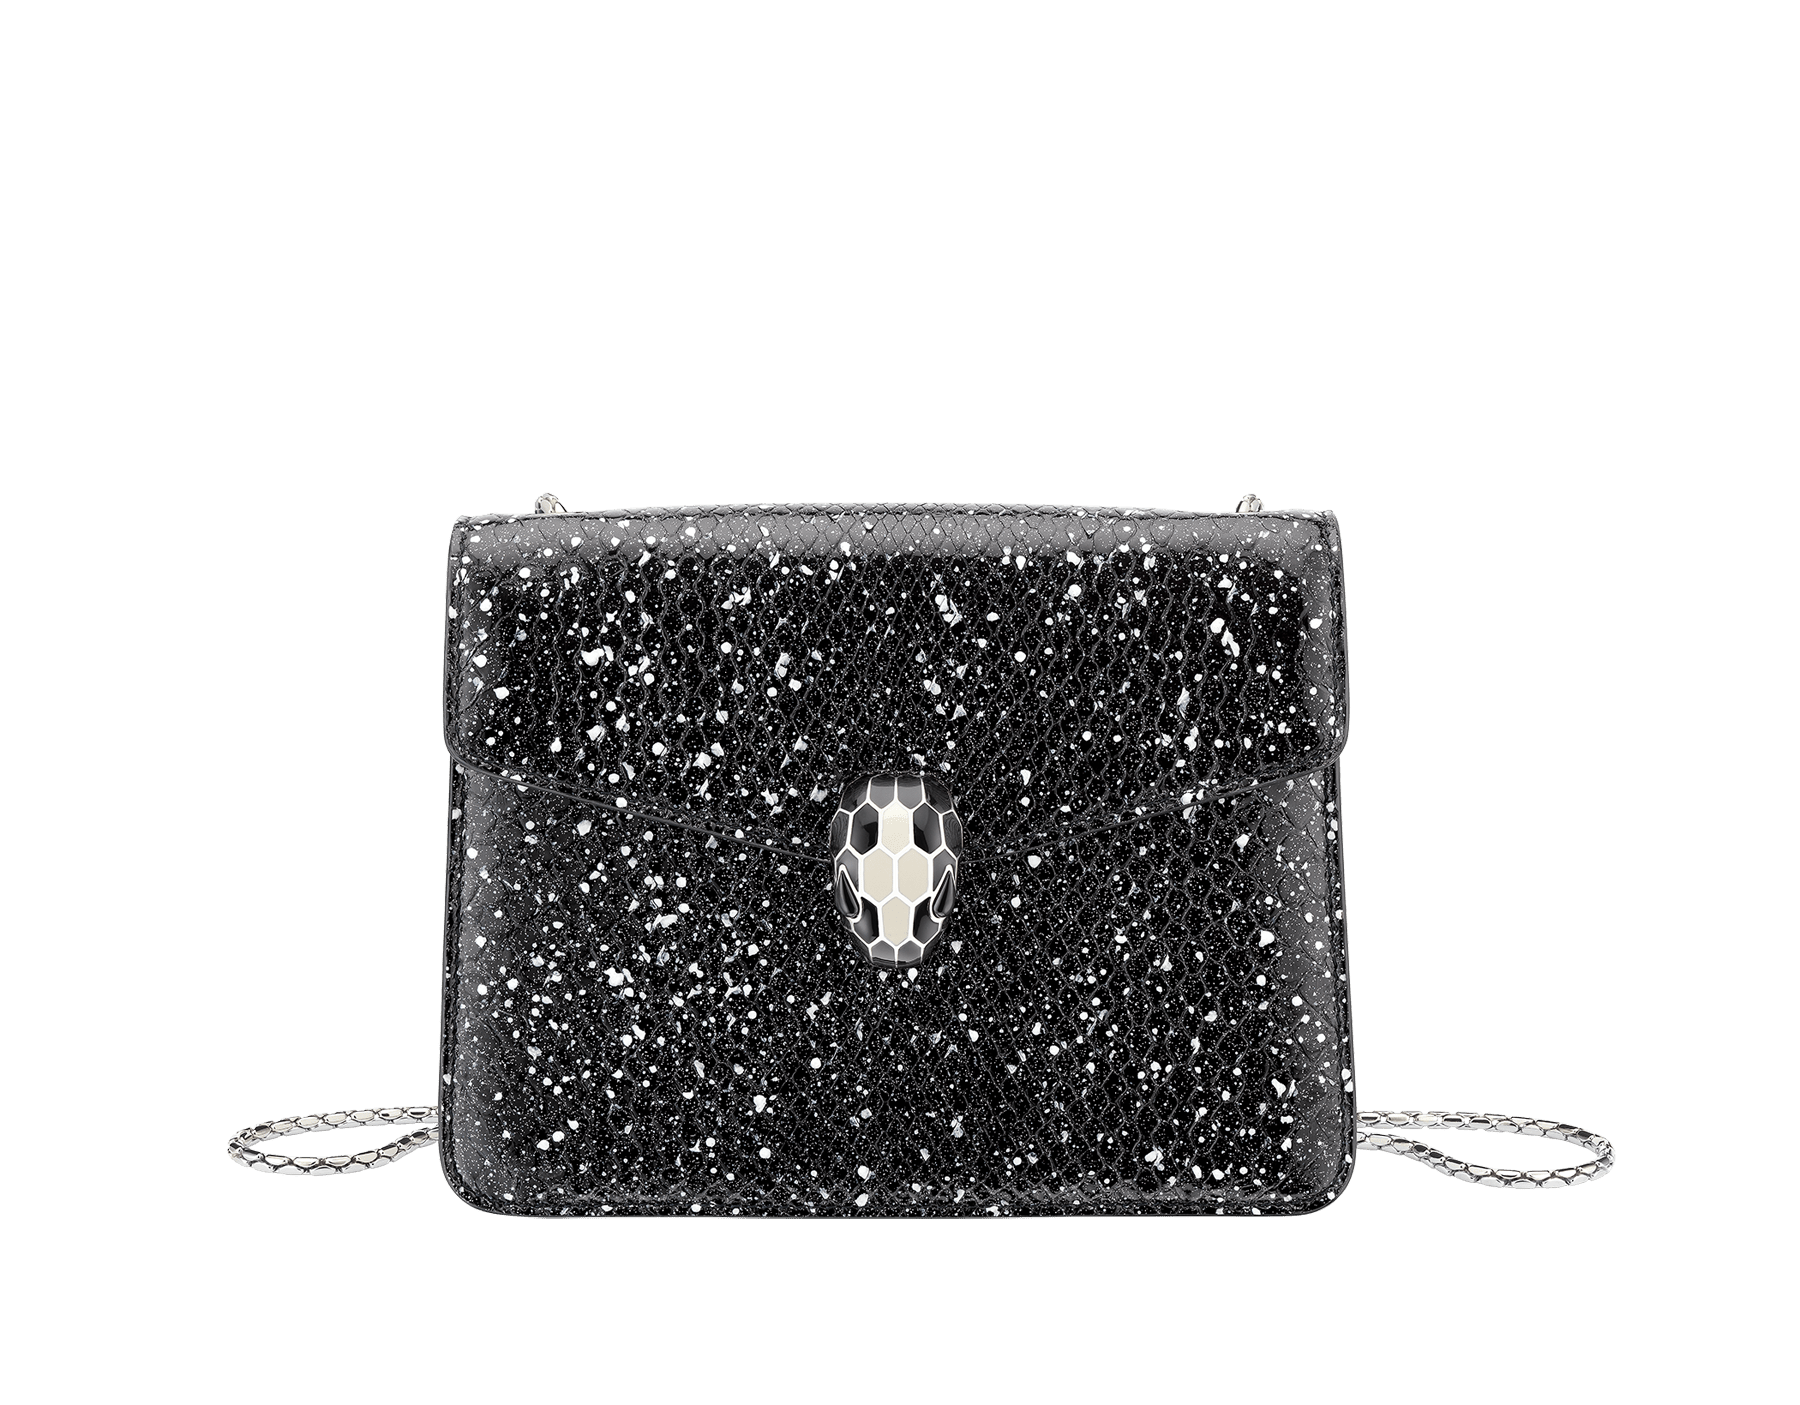 Serpenti Forever crossbody bag in black and white Cosmic python skin. Snakehead closure in palladium plated brass decorated with black and white enamel, and black onyx eyes. 288110 image 1